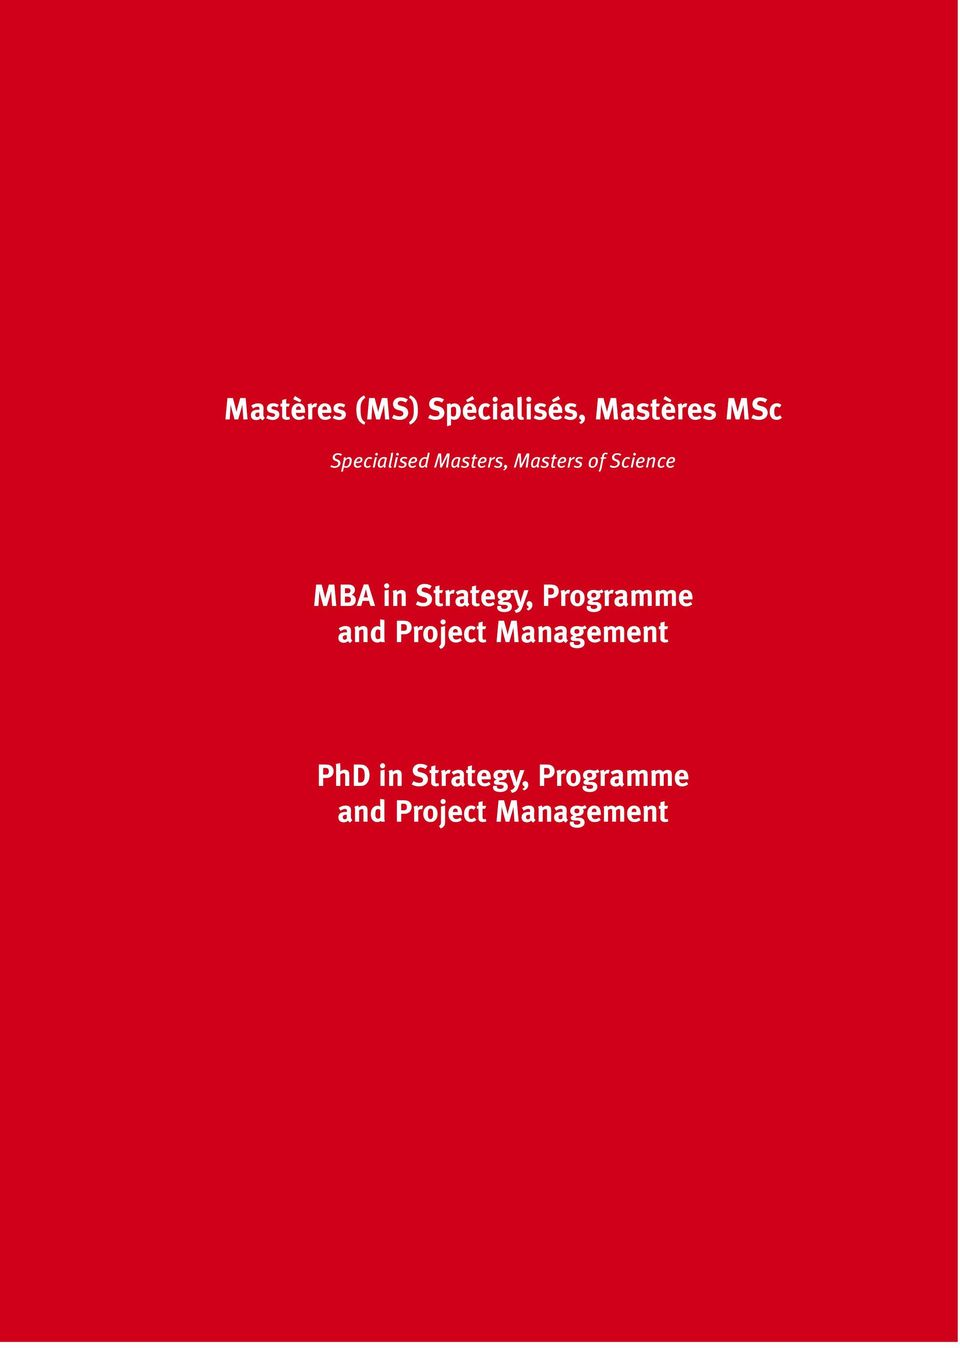 in Strategy, Programme and Project